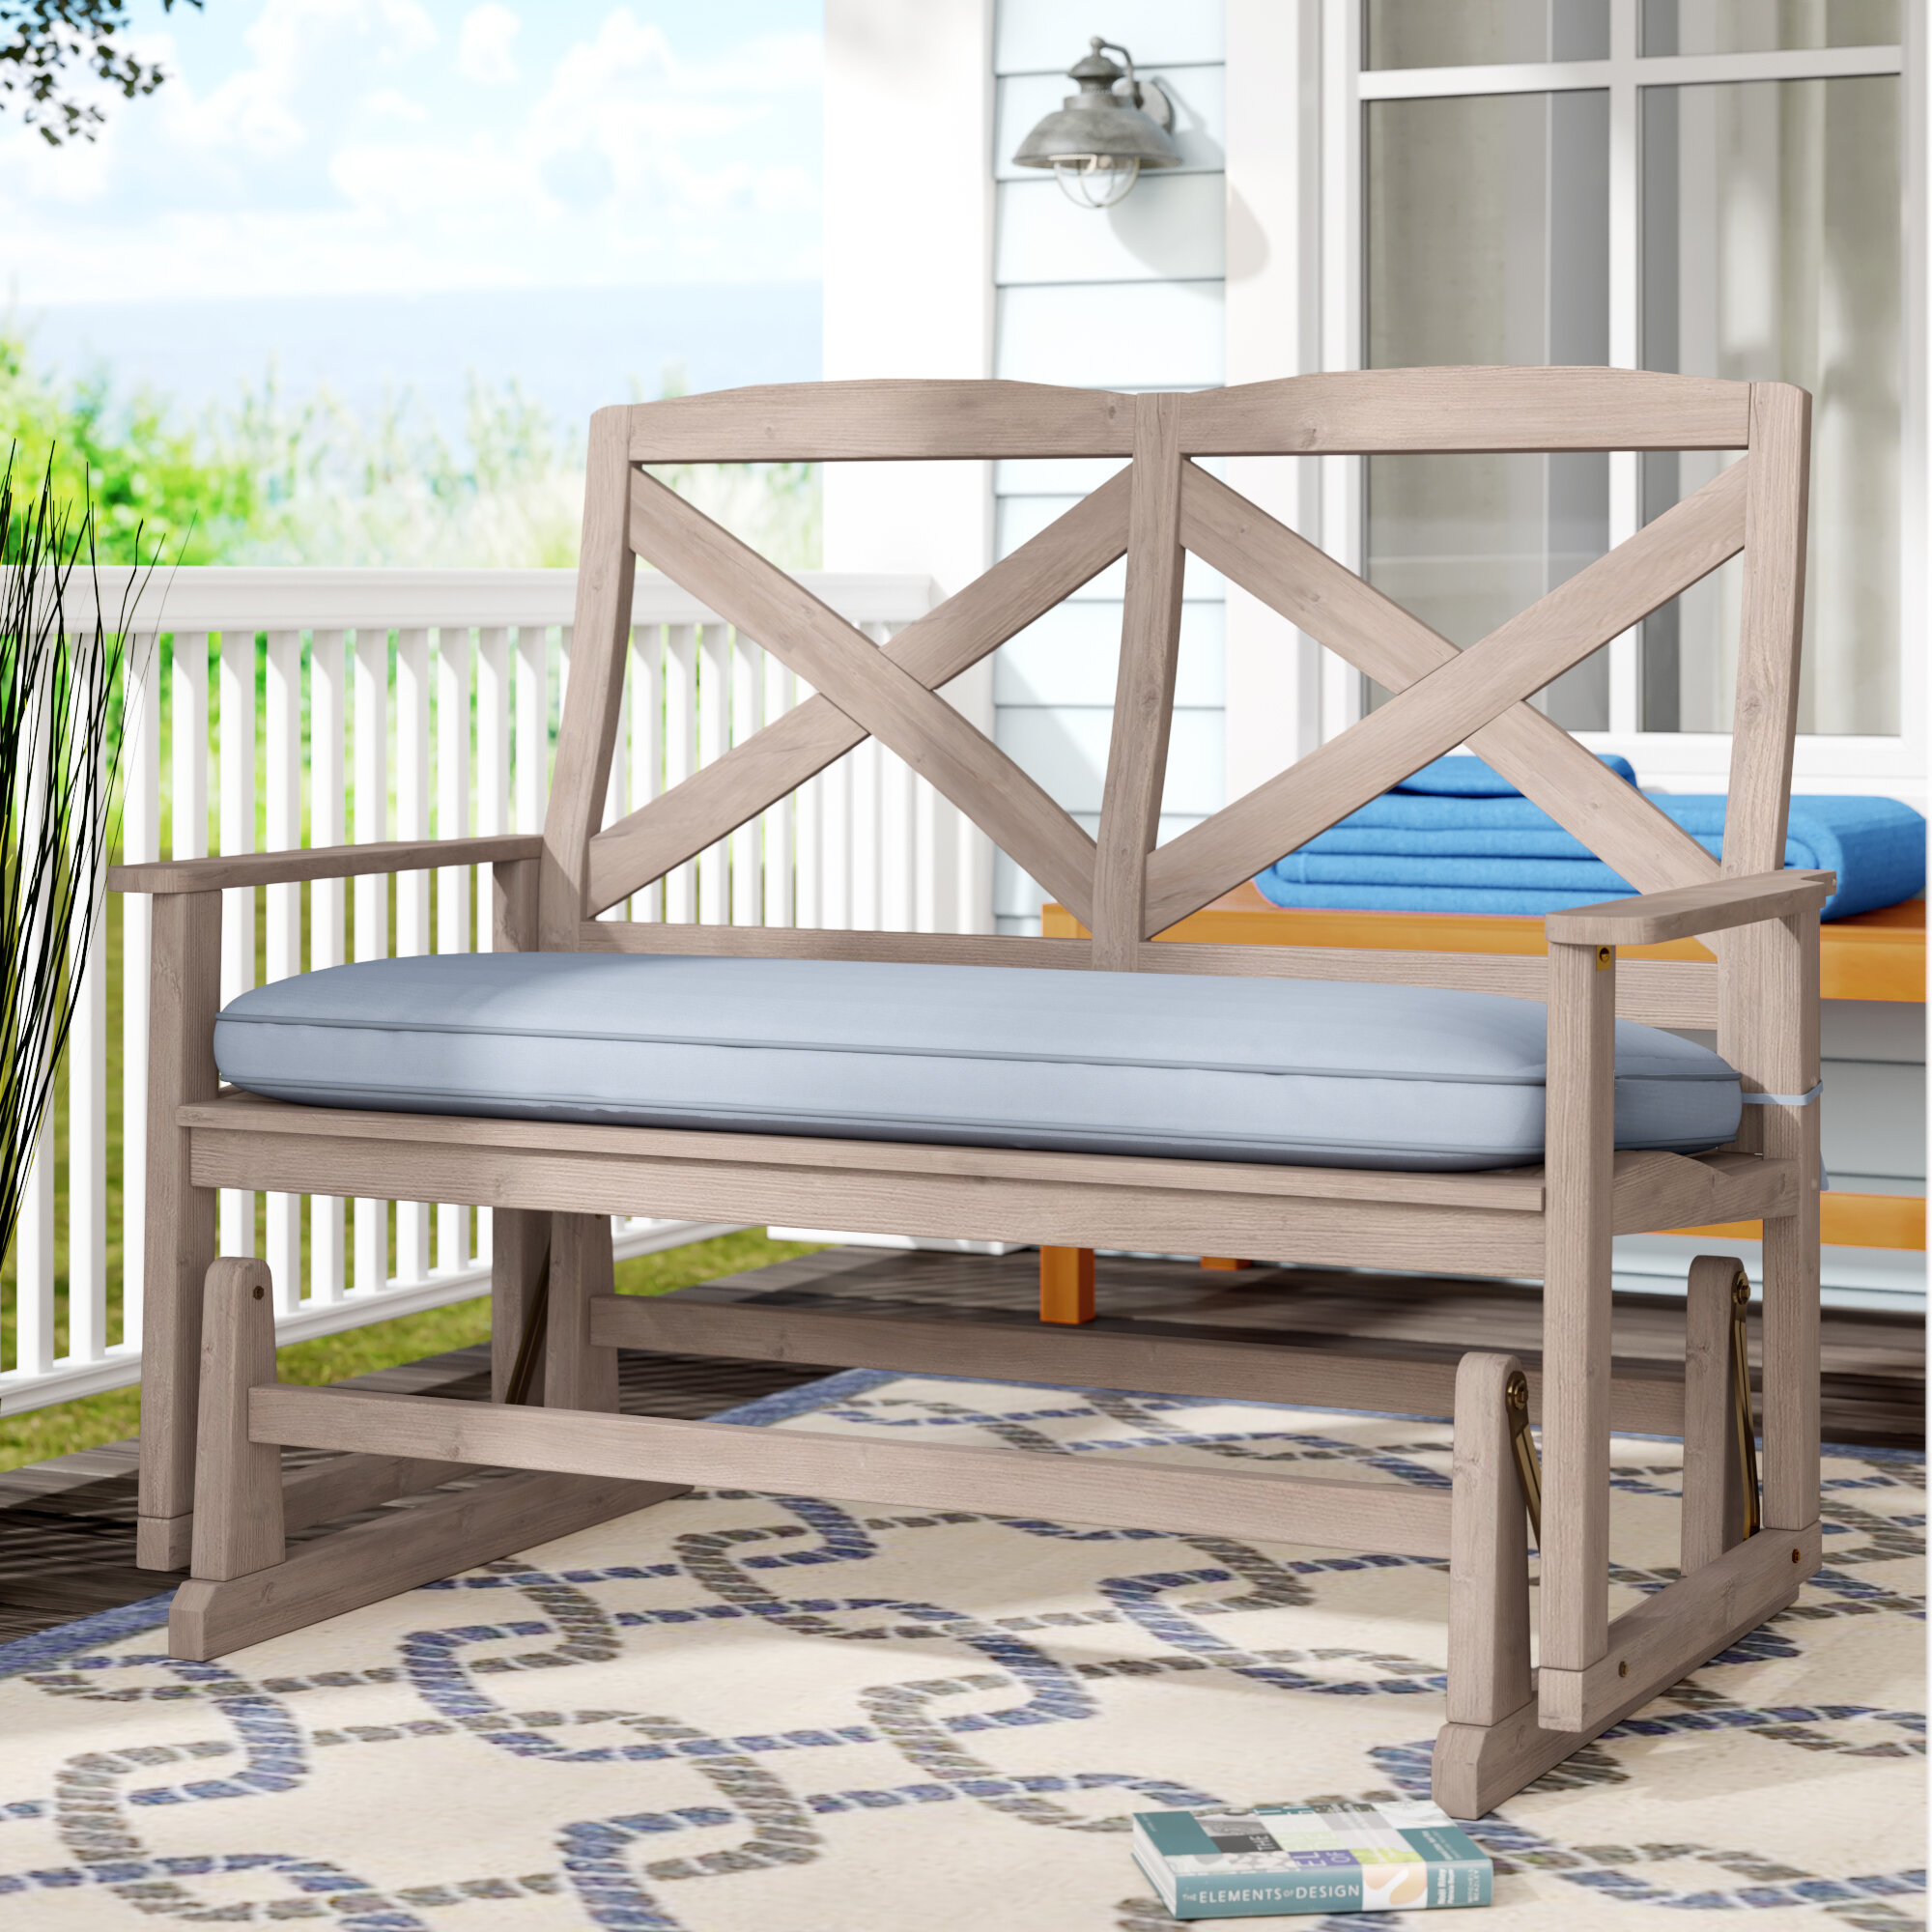 Beachcrest Home Englewood Glider Bench With Cushion Within 2 Person Natural Cedar Wood Outdoor Gliders (View 21 of 25)